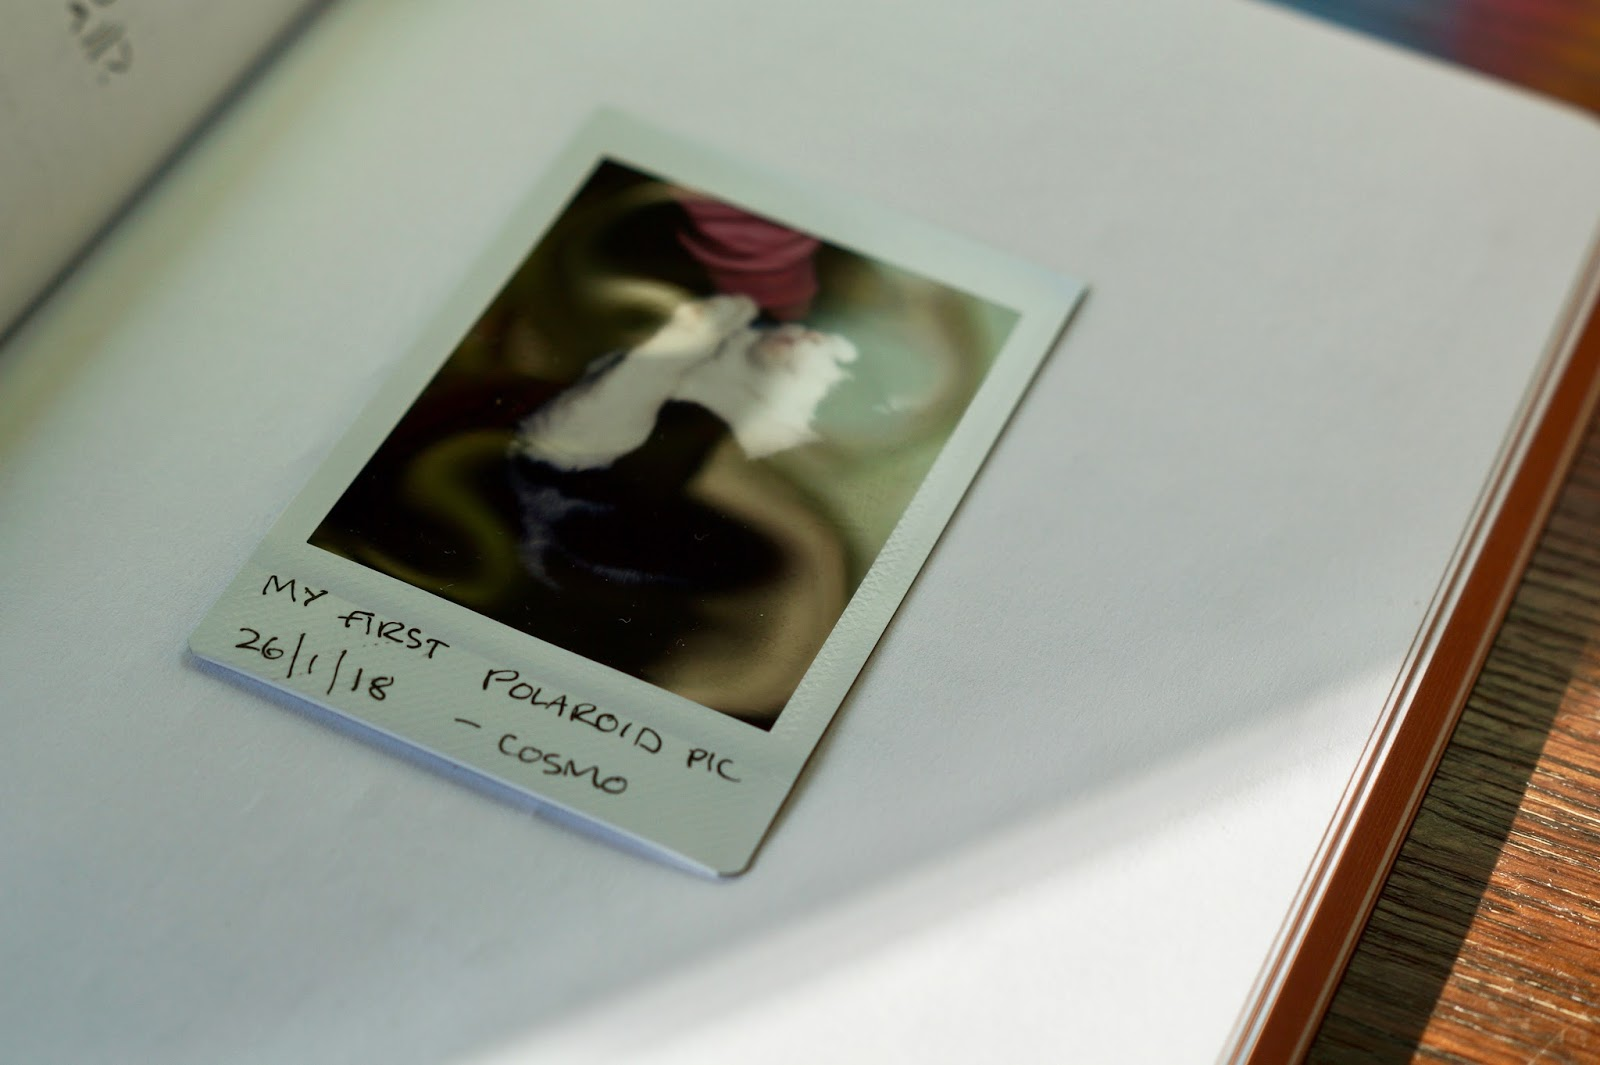 A polaroid image in a journal